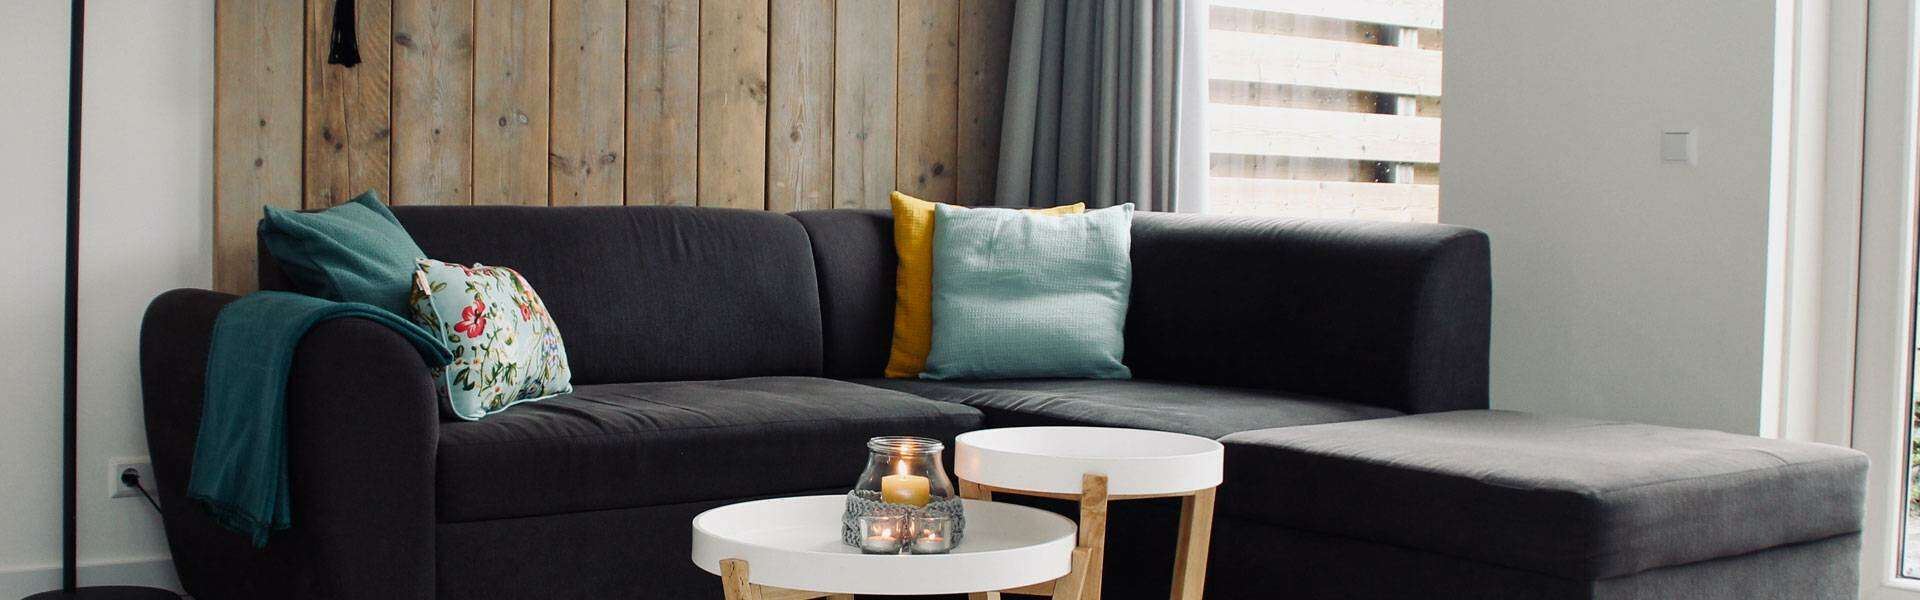 Living room consisting of black corner sofa against wooden tiled wall with small white coffee table with a candle